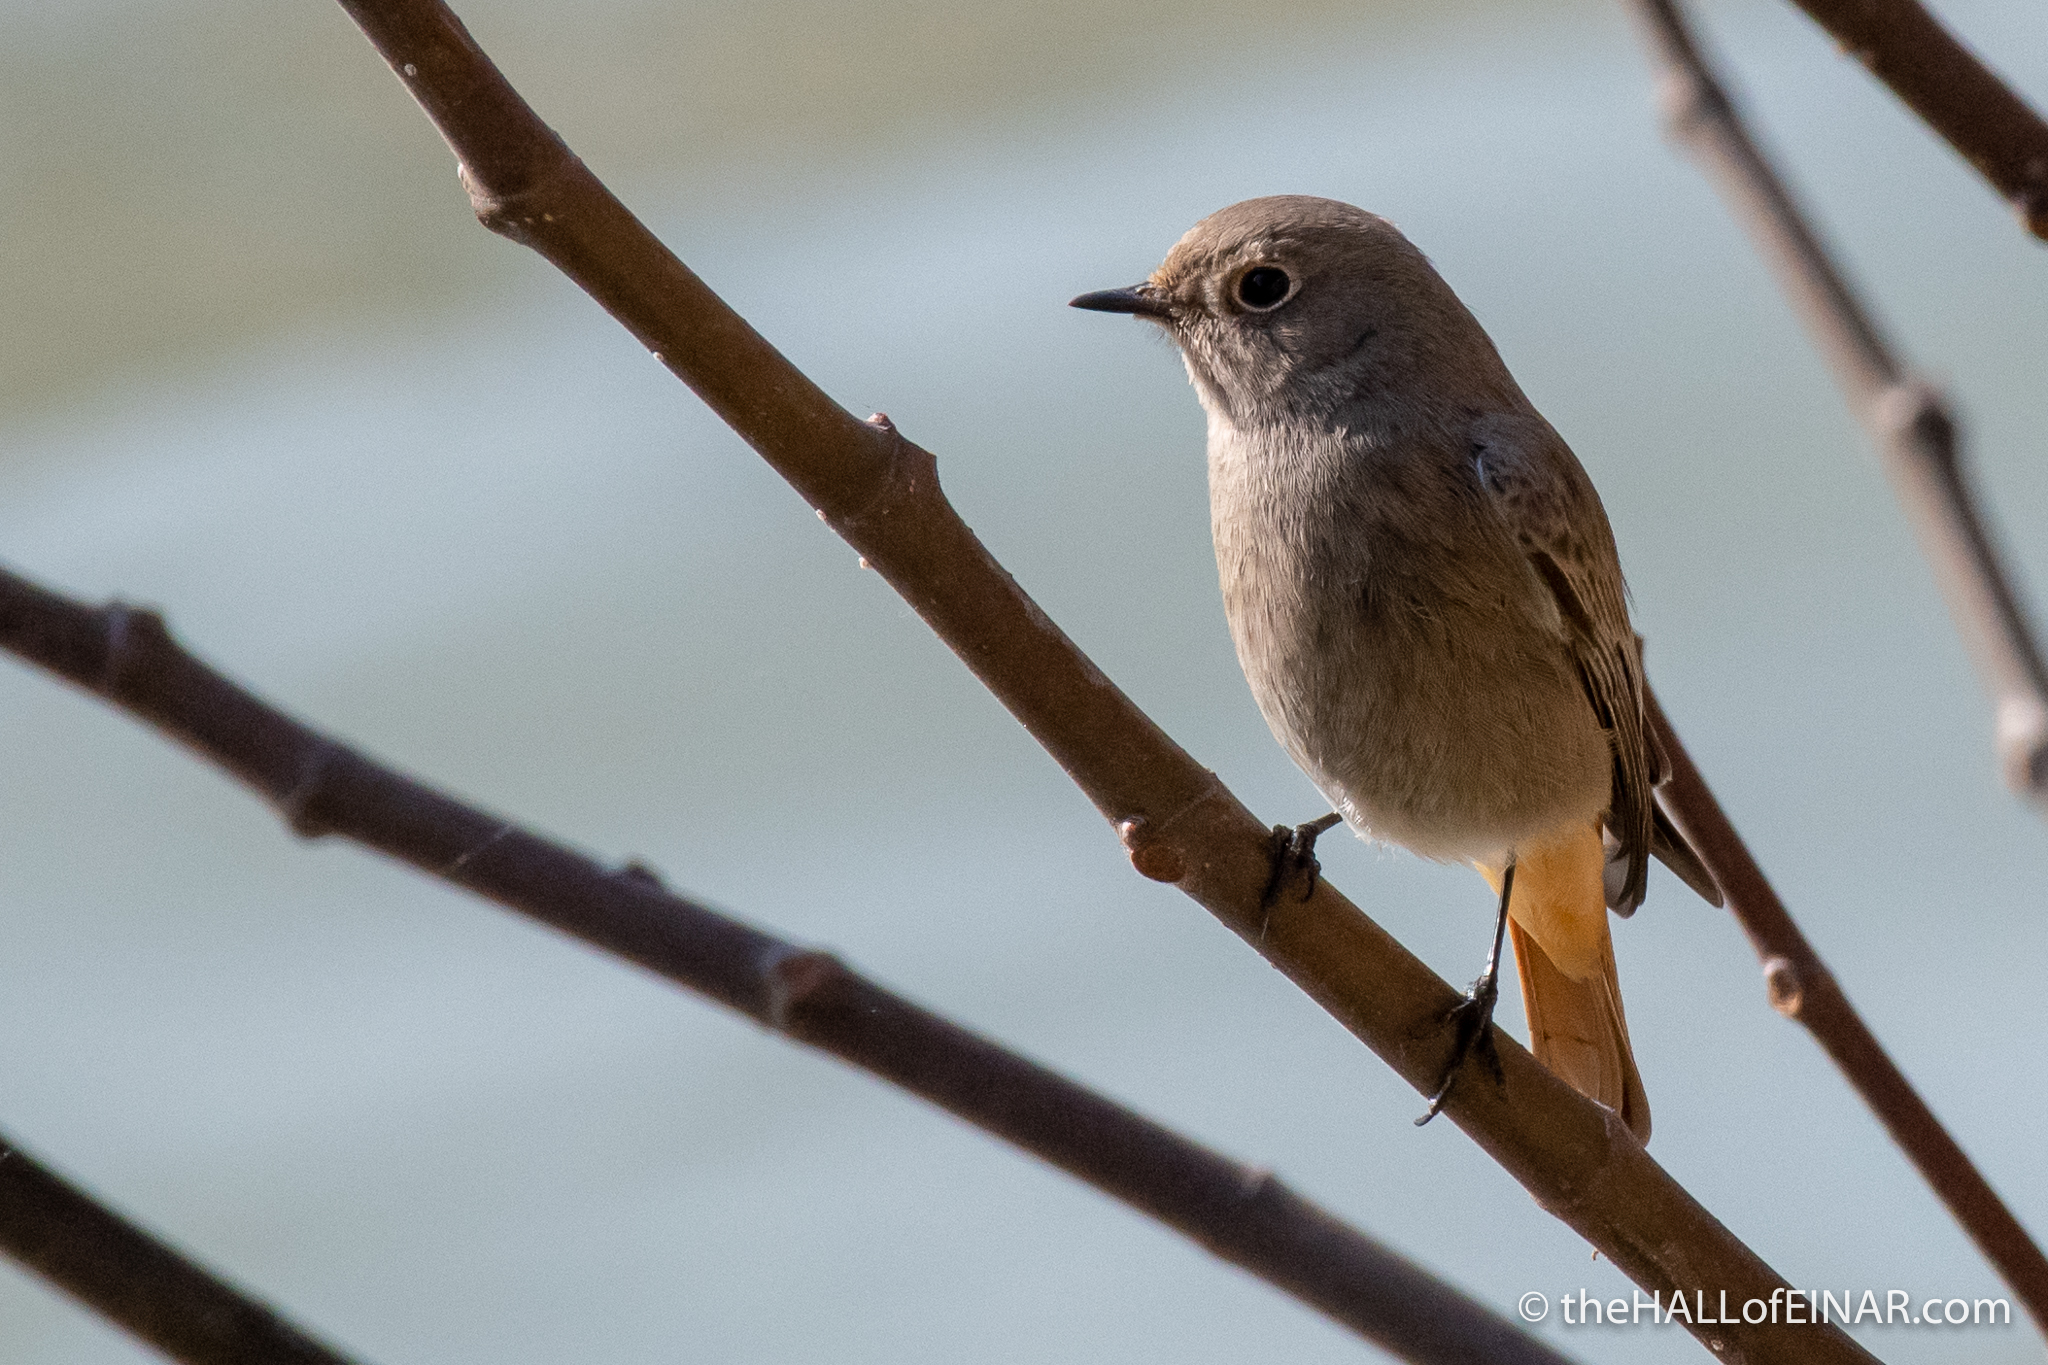 Black Redstart on the Tevere - The Hall of Einar - photograph (c) David Bailey (not the)